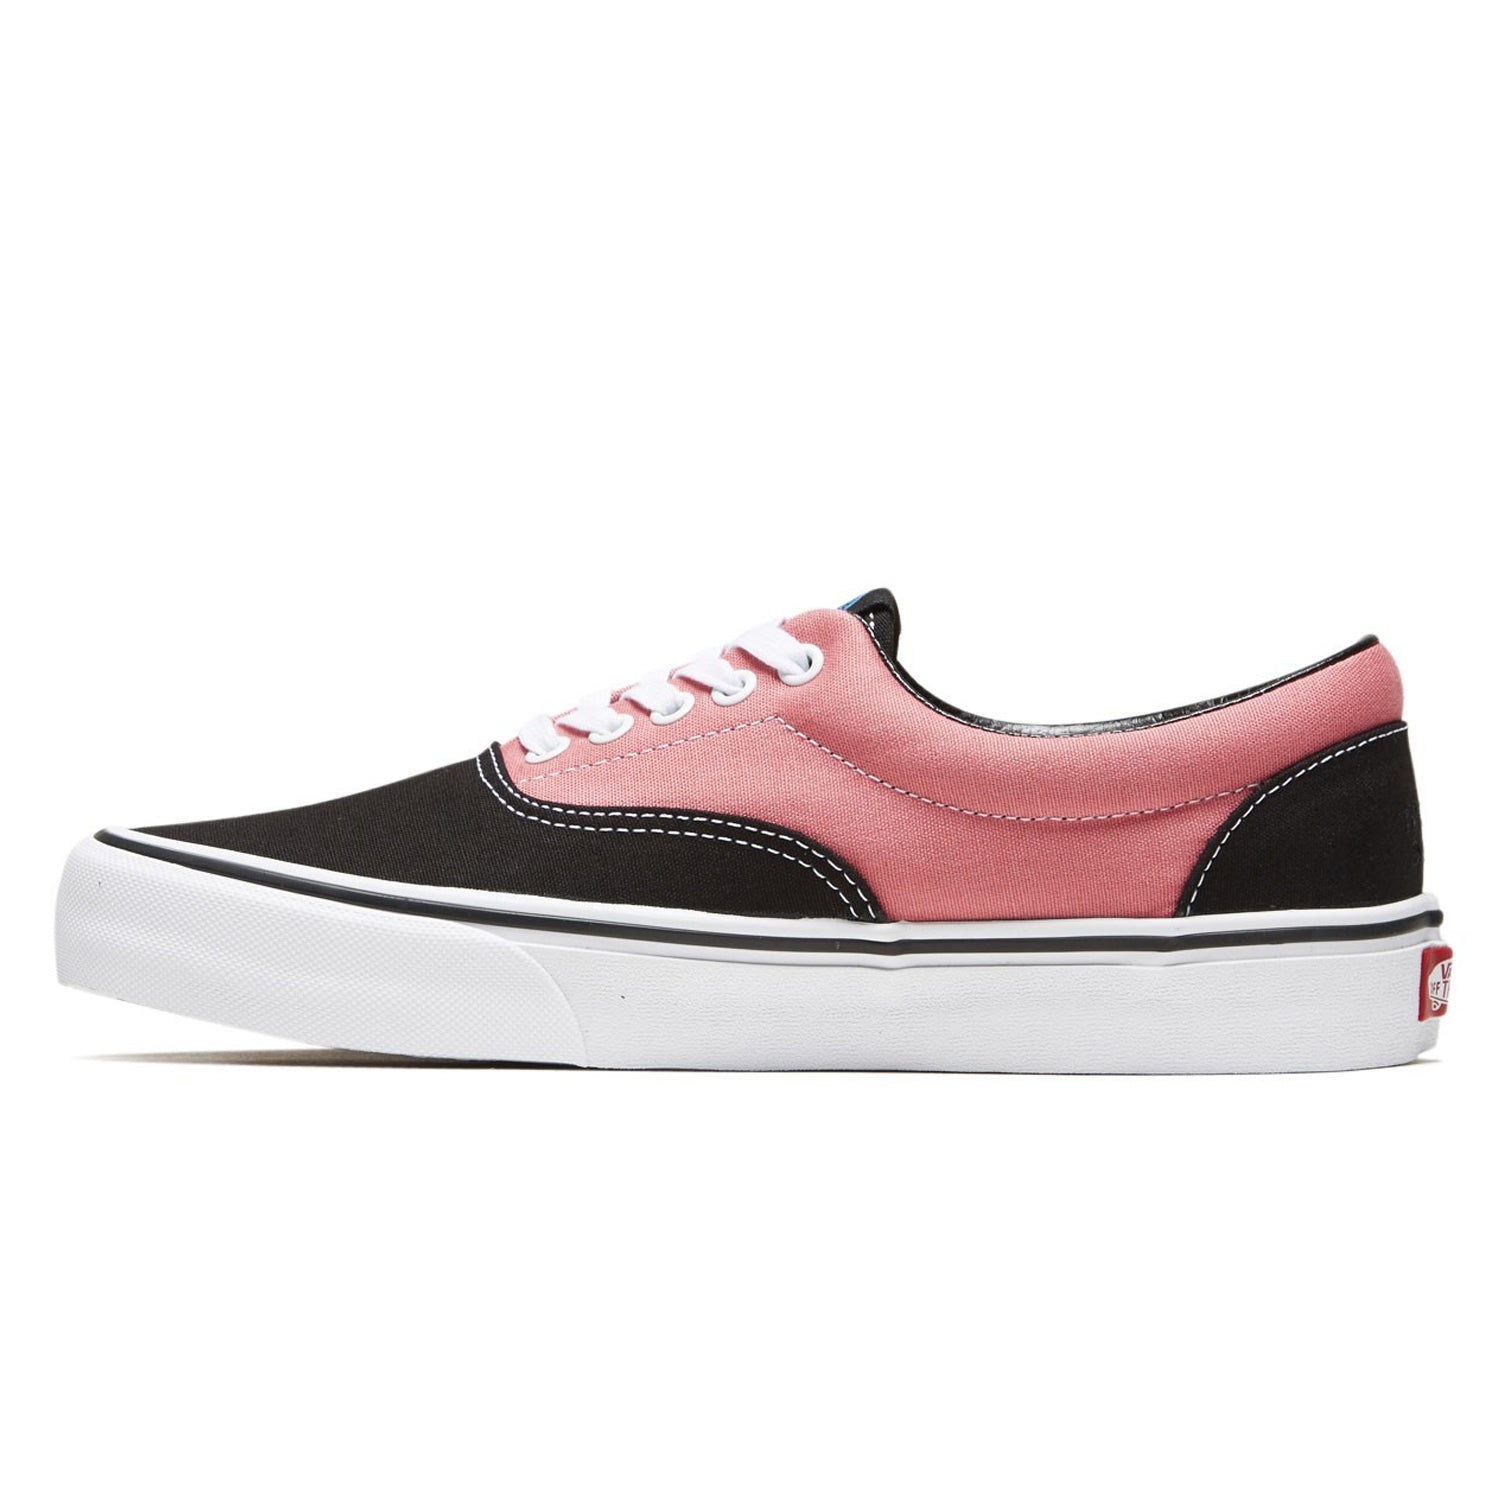 Vans x T and C Era Pro SF Calypso